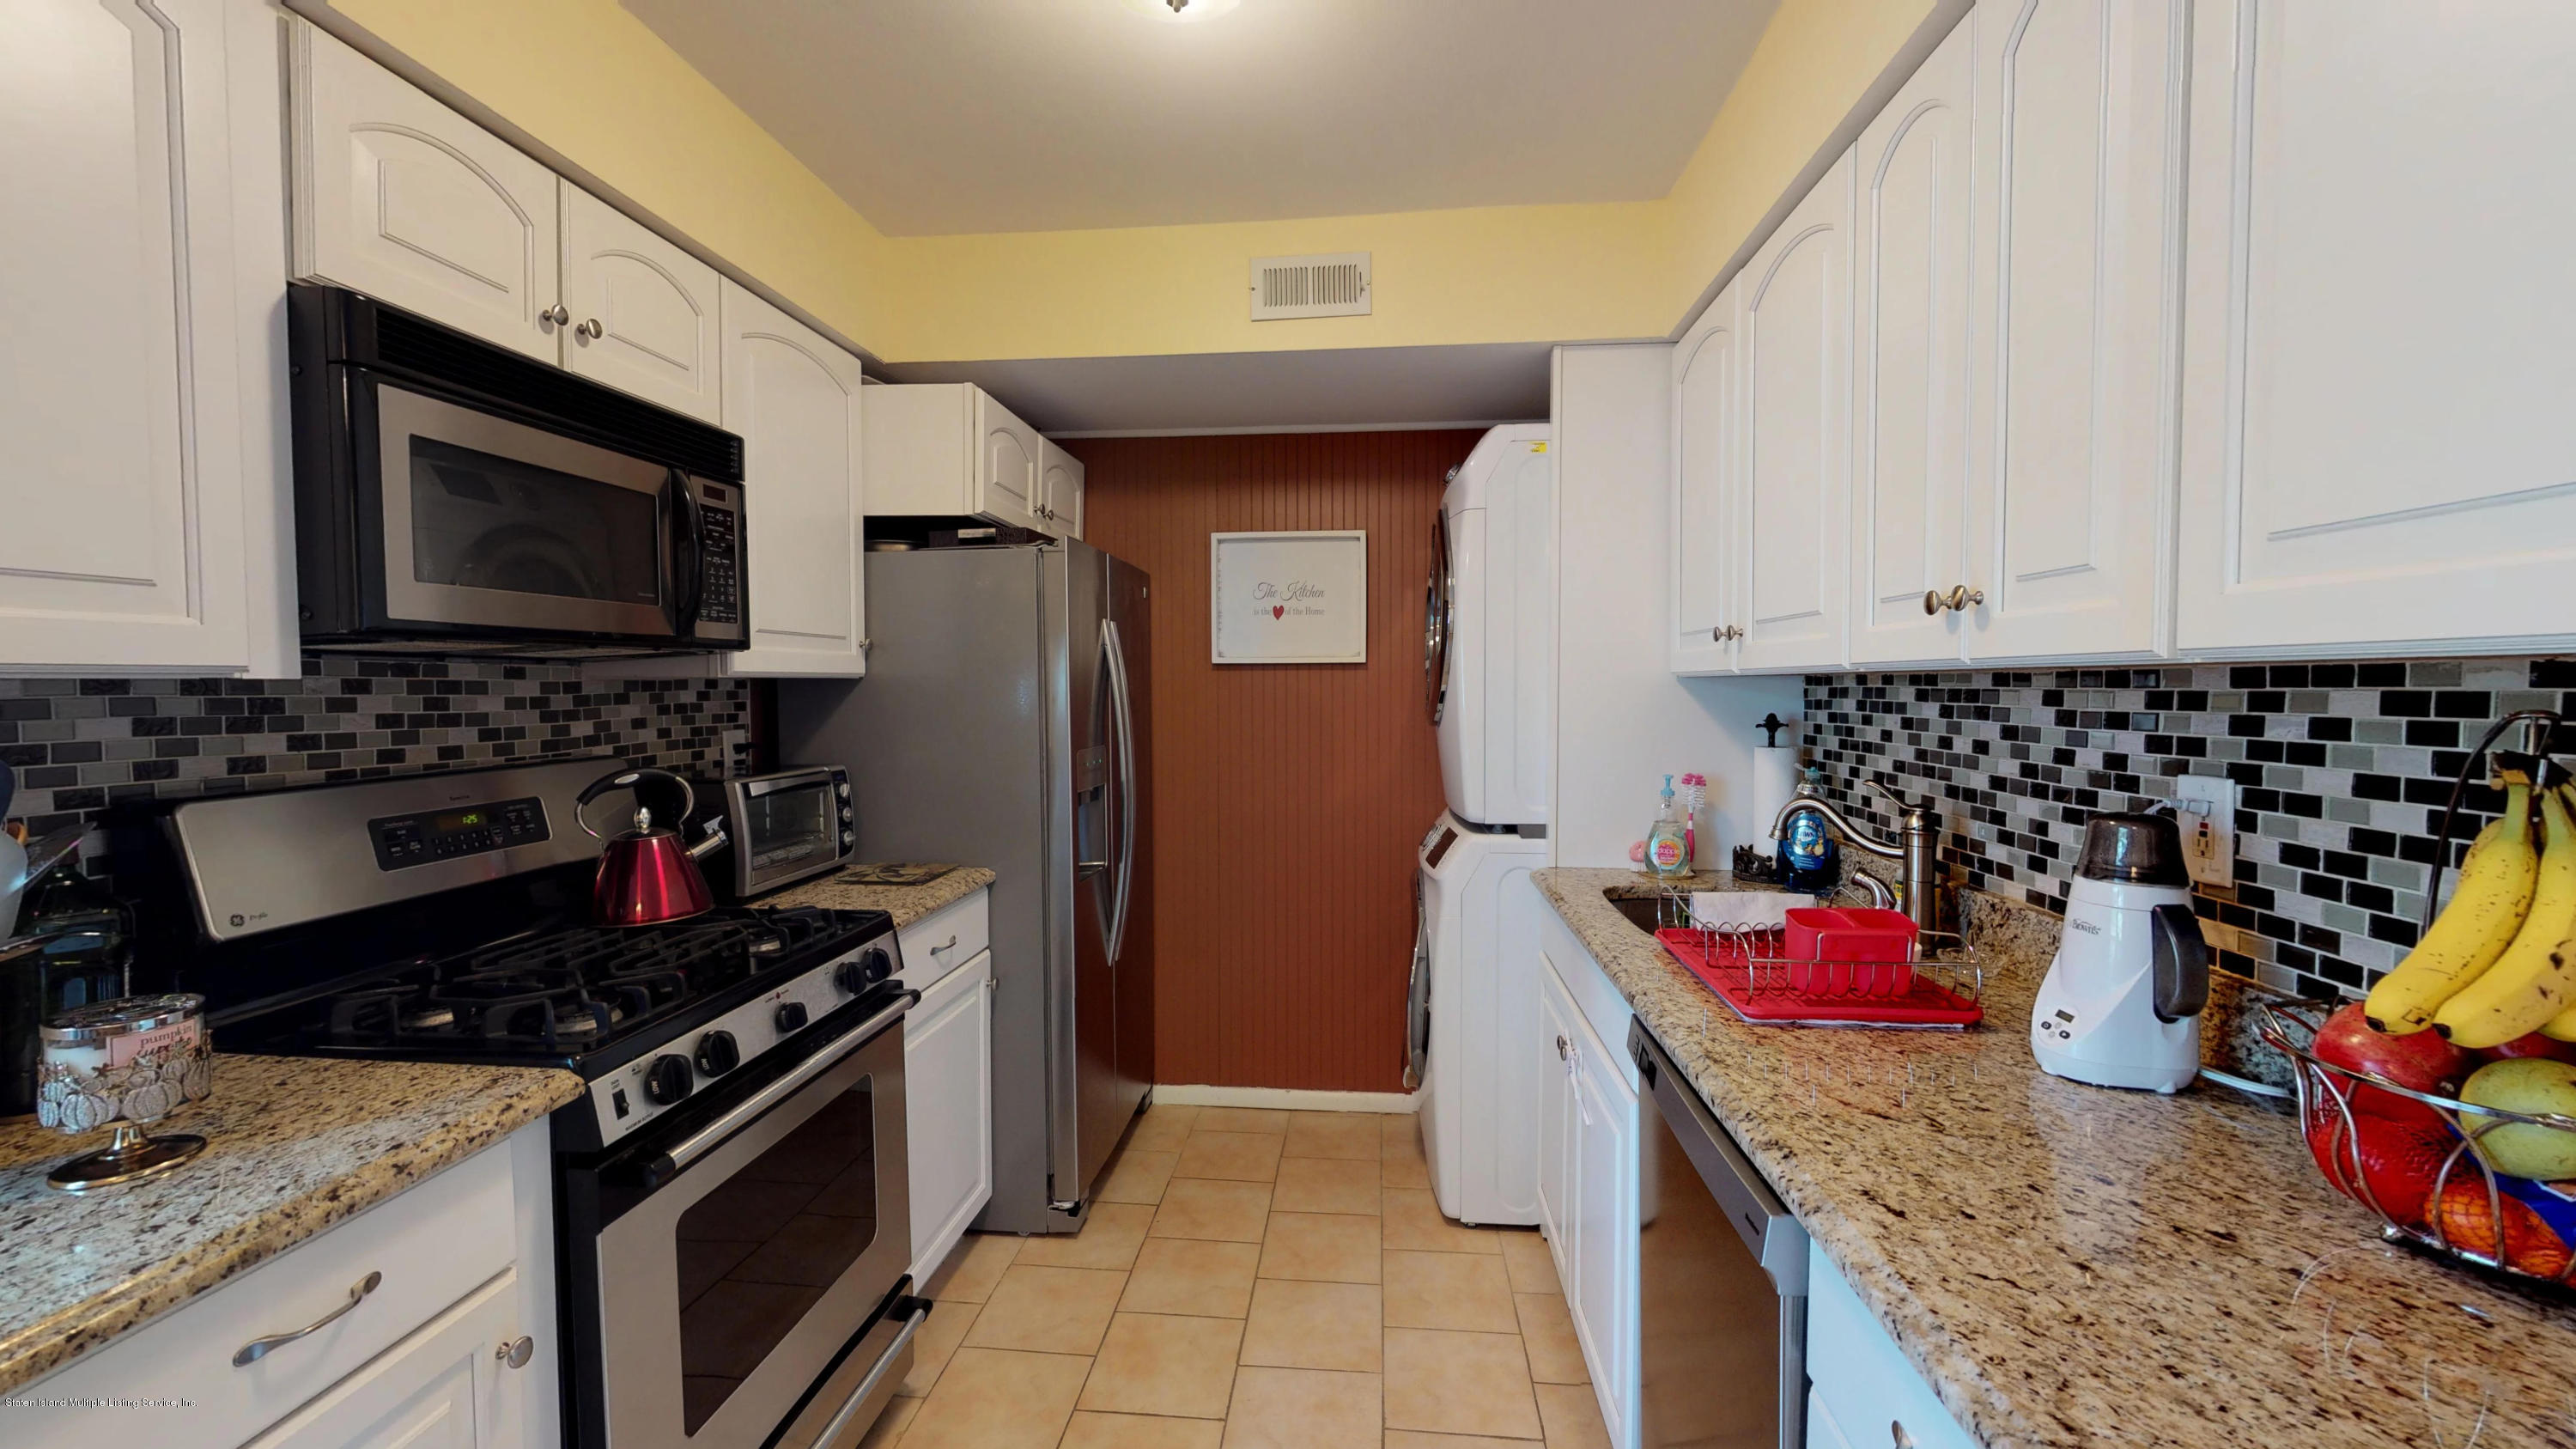 Single Family - Attached 69 Bunnell Court  Staten Island, NY 10312, MLS-1124106-8